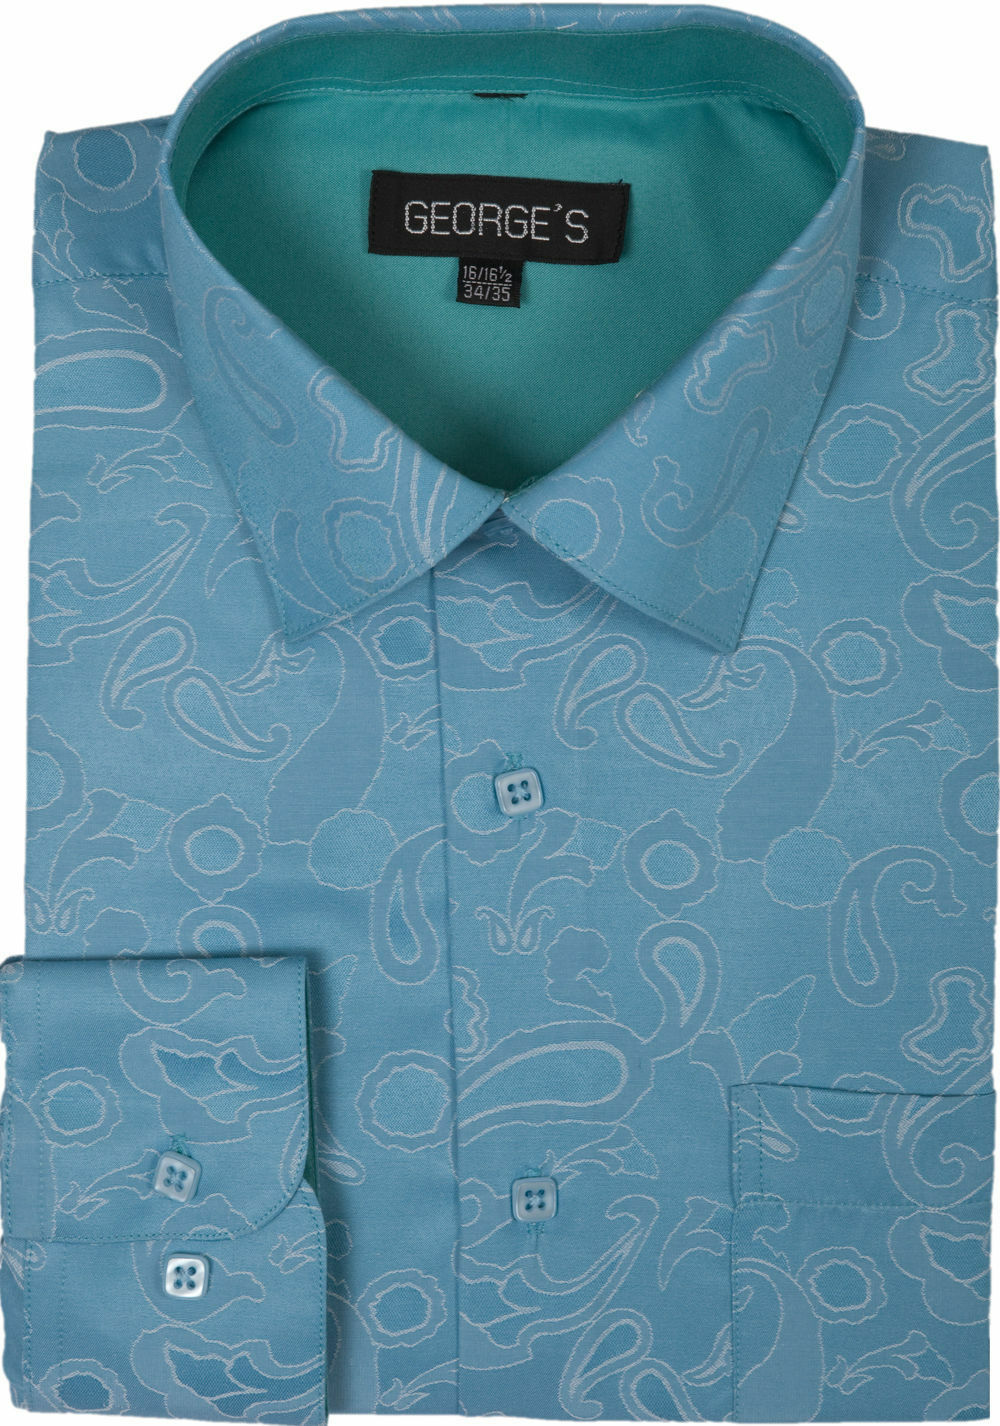 Men Shirt AH625-Turquoise - Church Suits For Less